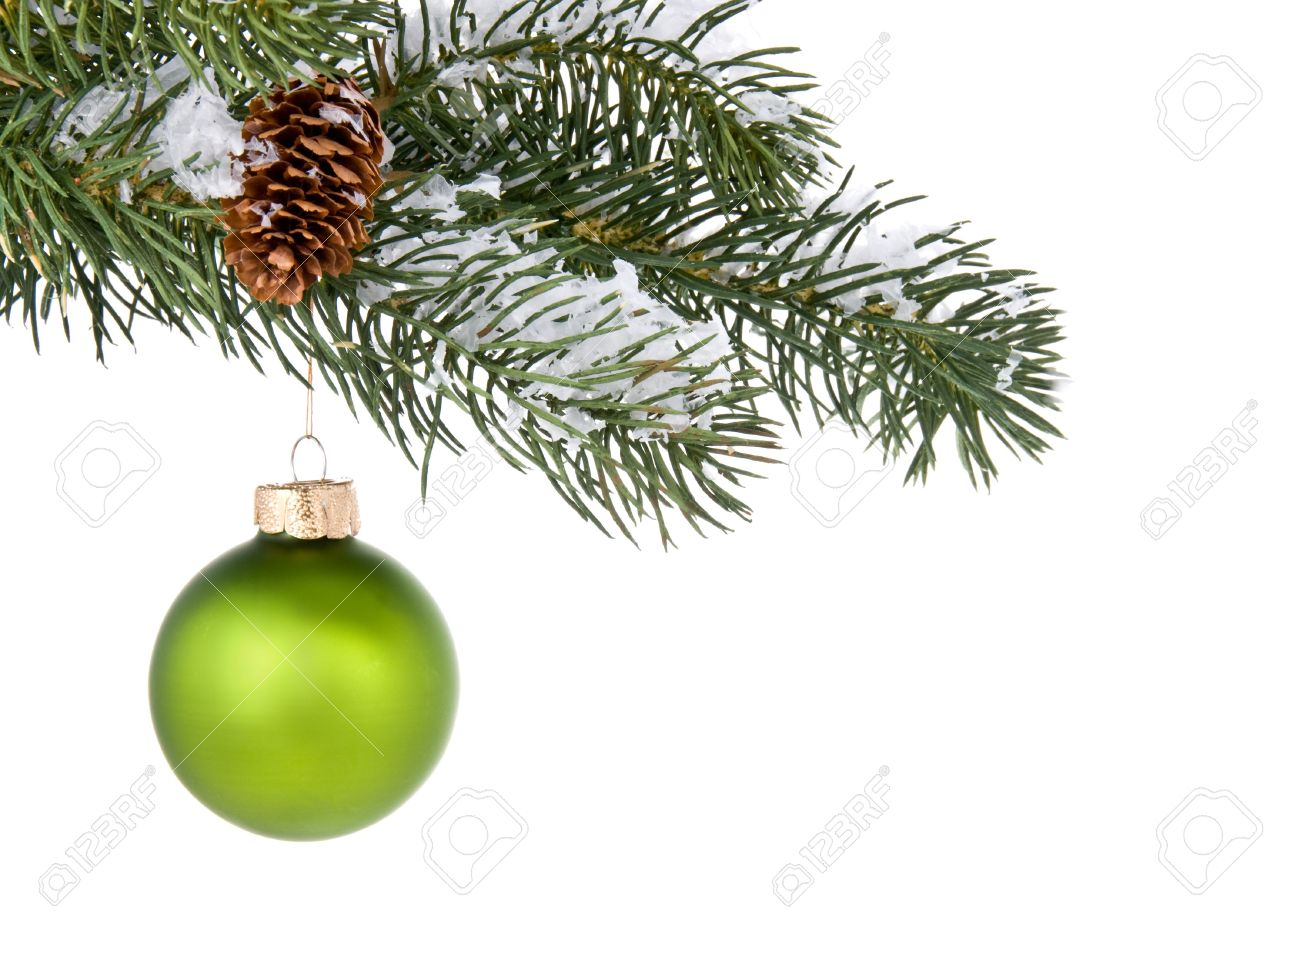 Green Christmas Tree Ornament Hangs From A Pine Tree Branch On ...